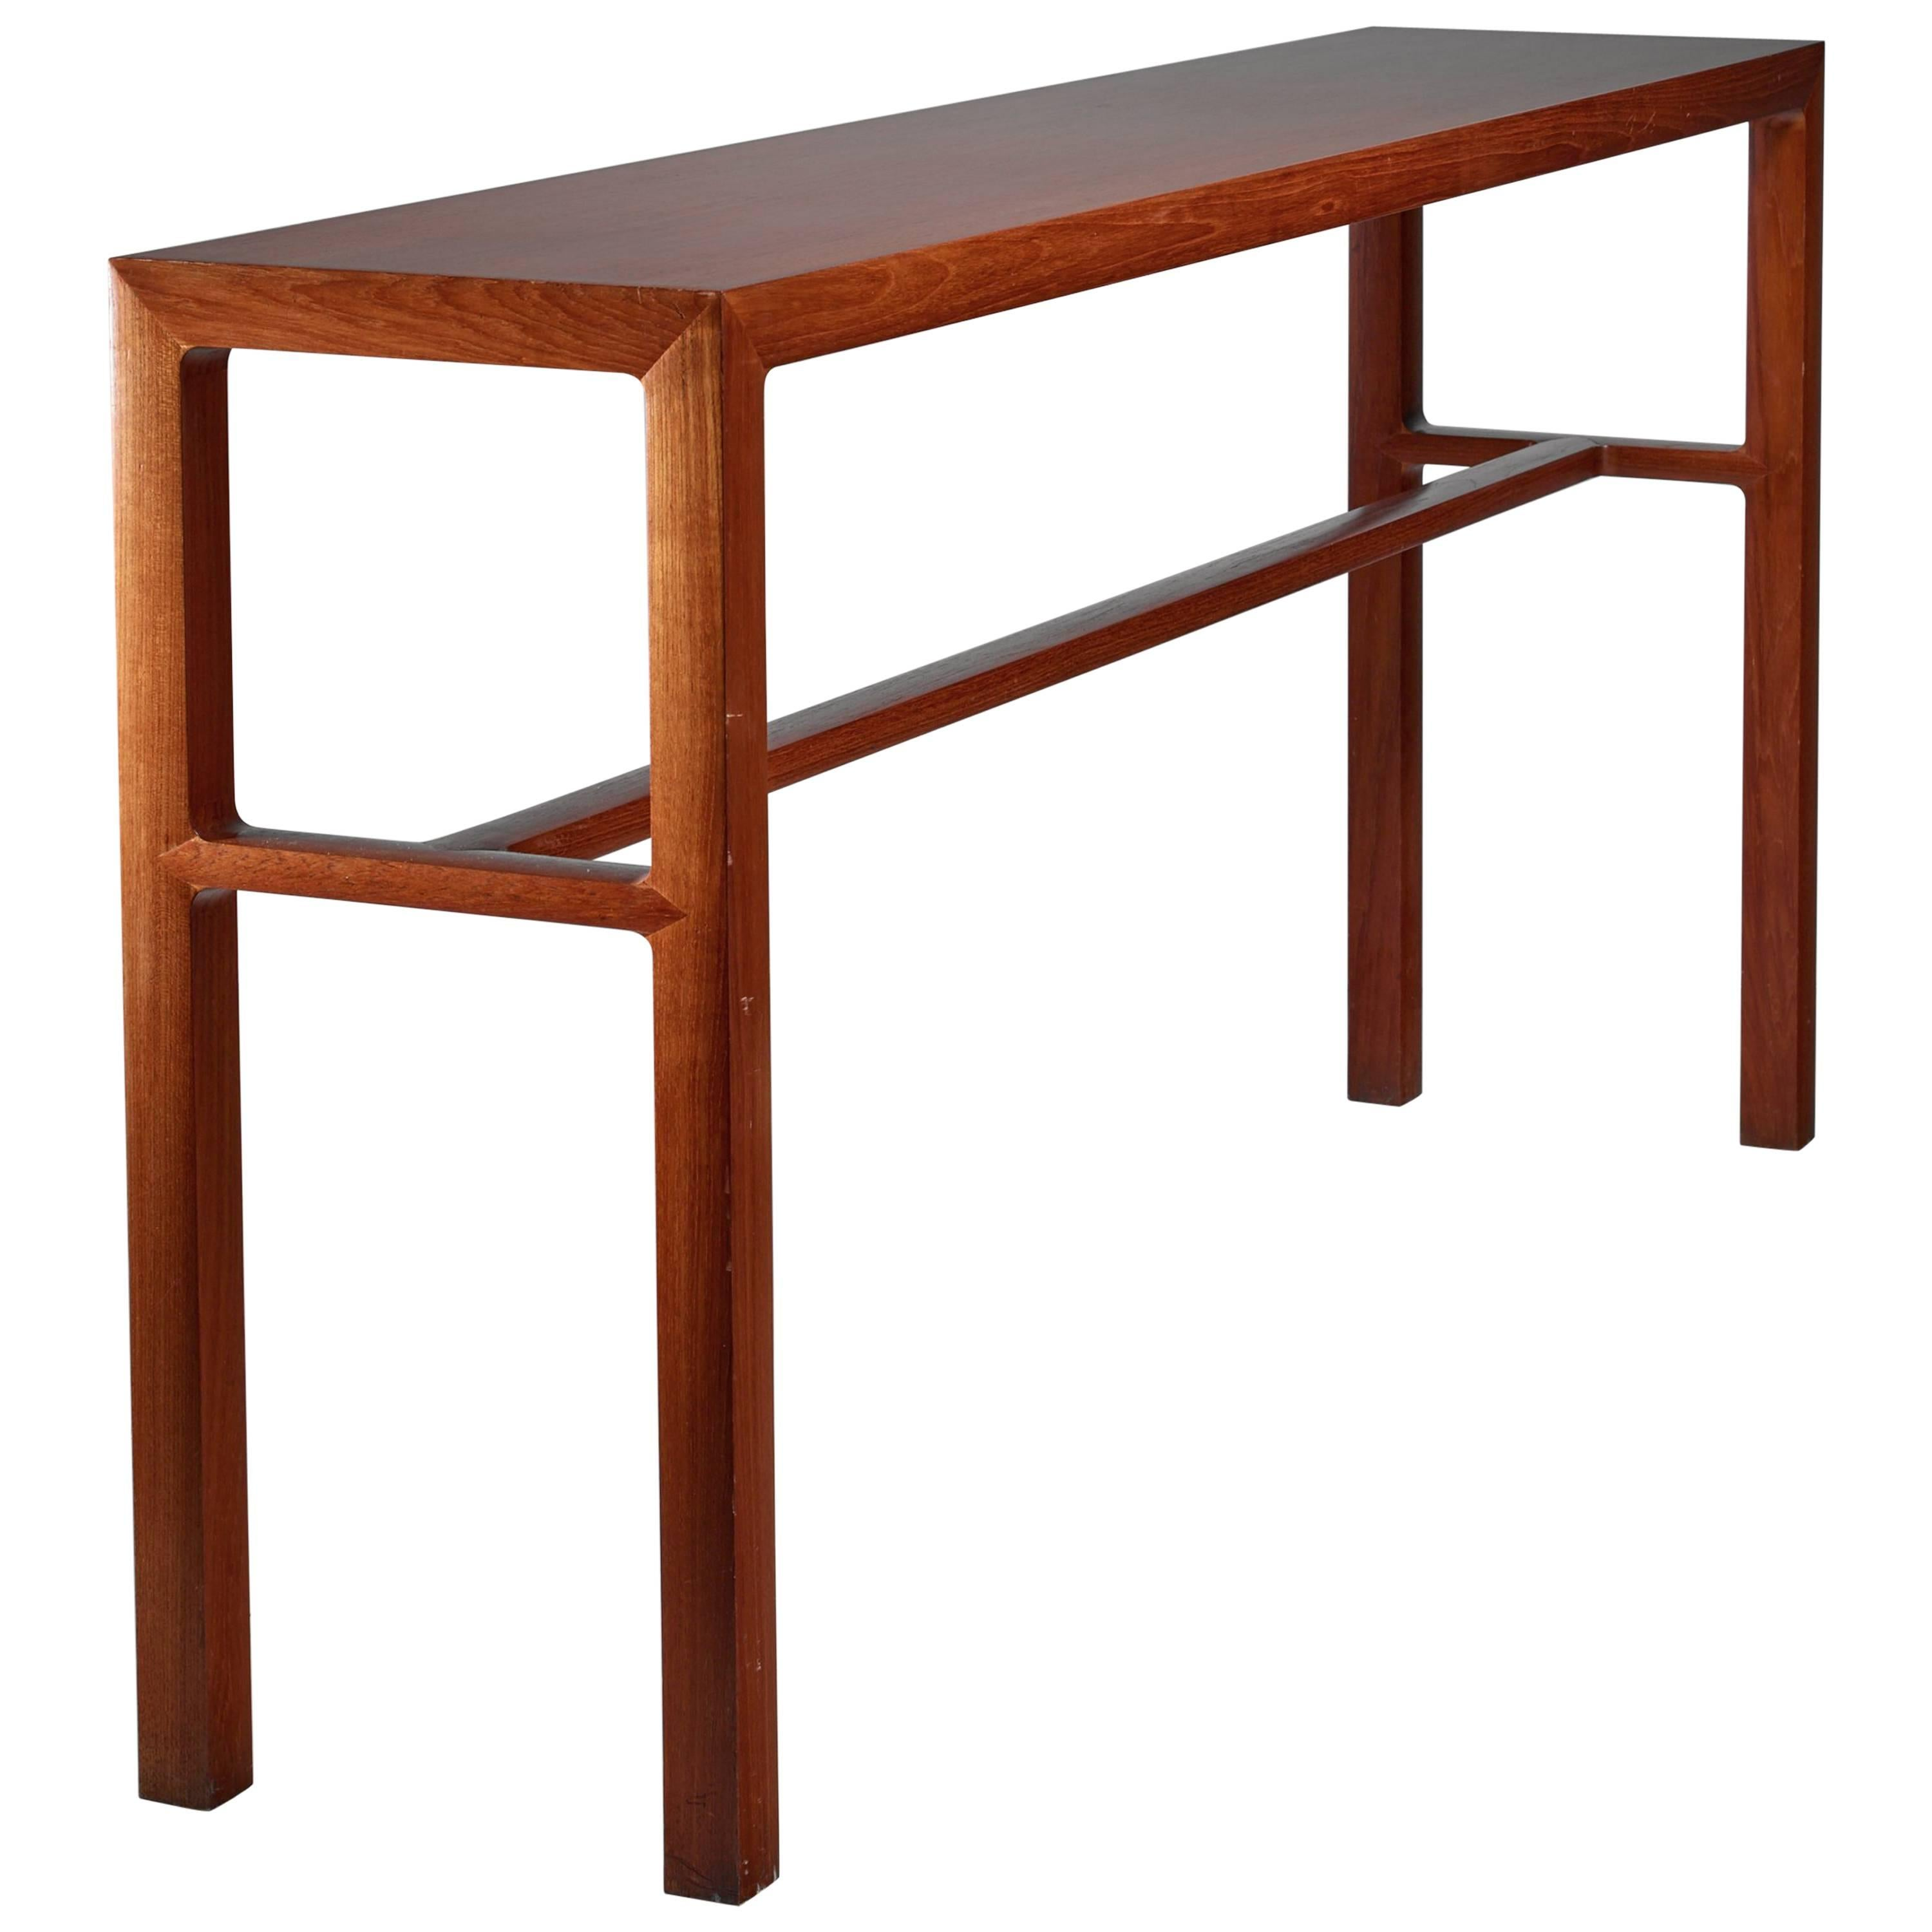 Scandinavian Long Wooden Console Table, 1960s For Sale